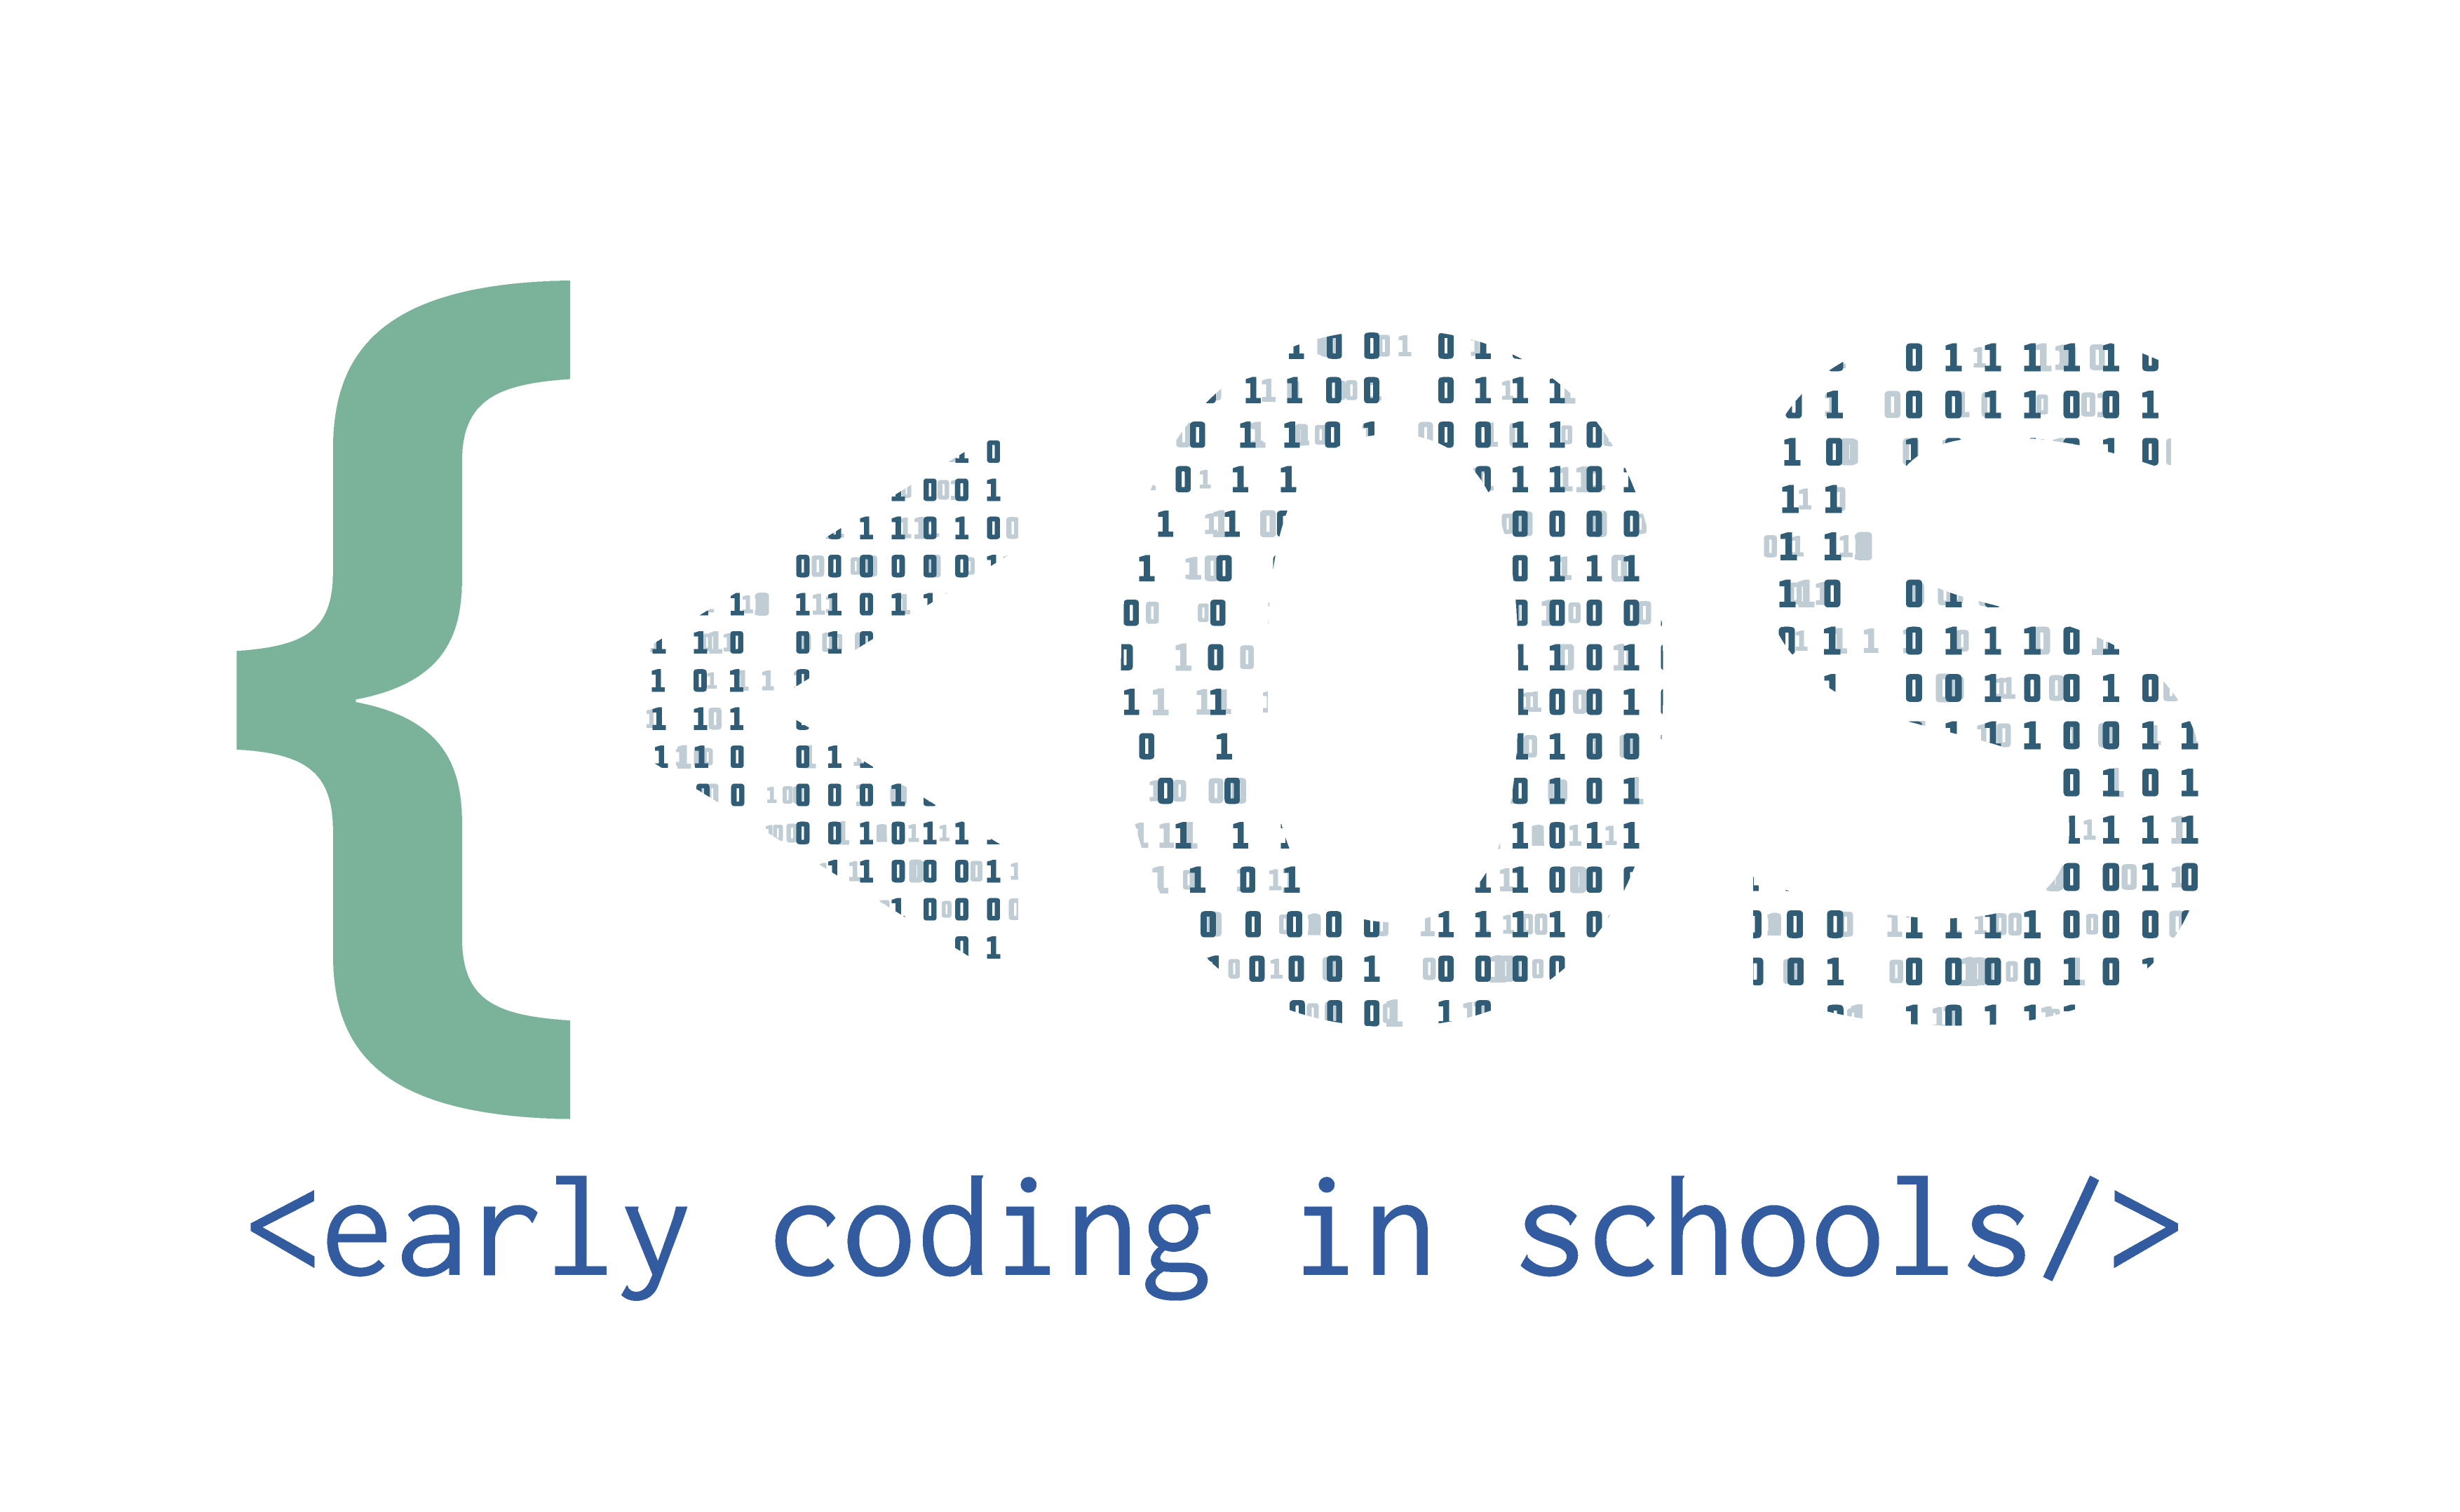 ECoS – Early Coding in Schools